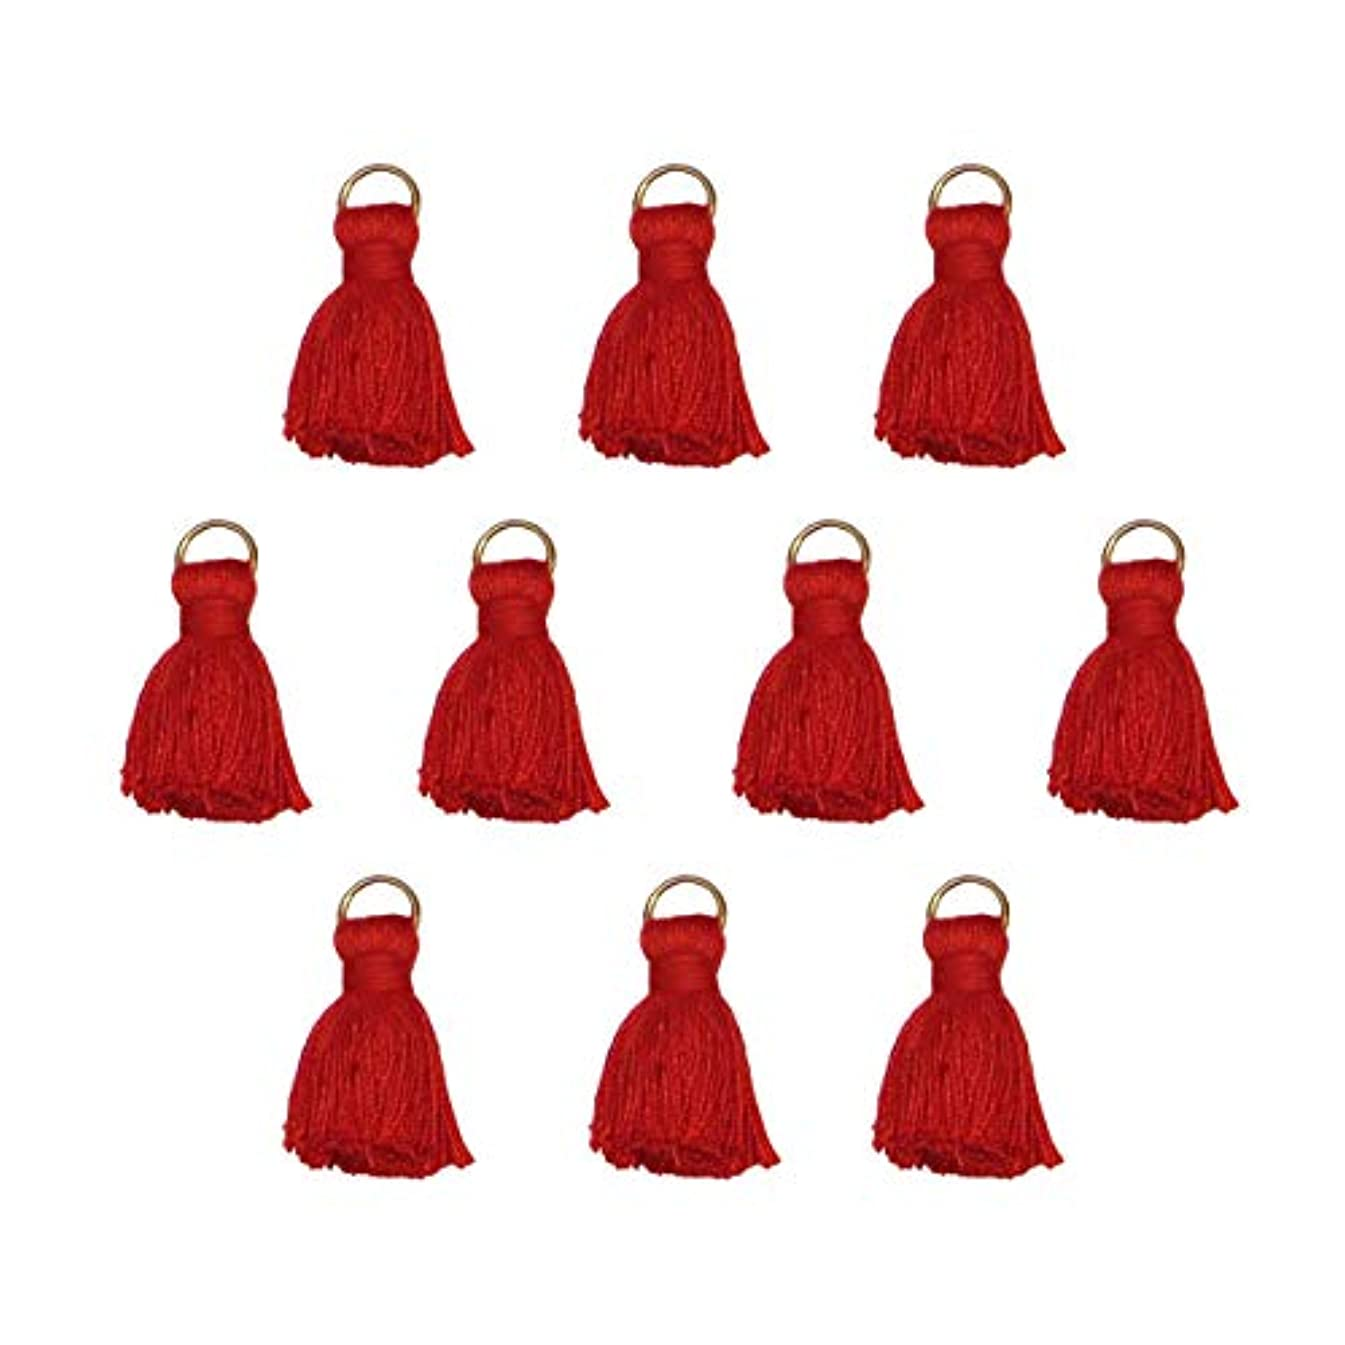 Tassels for Jewelry Making, Crafts, Decor, DIY - Mini 1 inch - White, Black, Navy Blue, Pink, Red, Green, Purple - for Earrings, Necklace, Bracelet, Mala, Pillows, Zipper - 10 pcs Pack (Red)